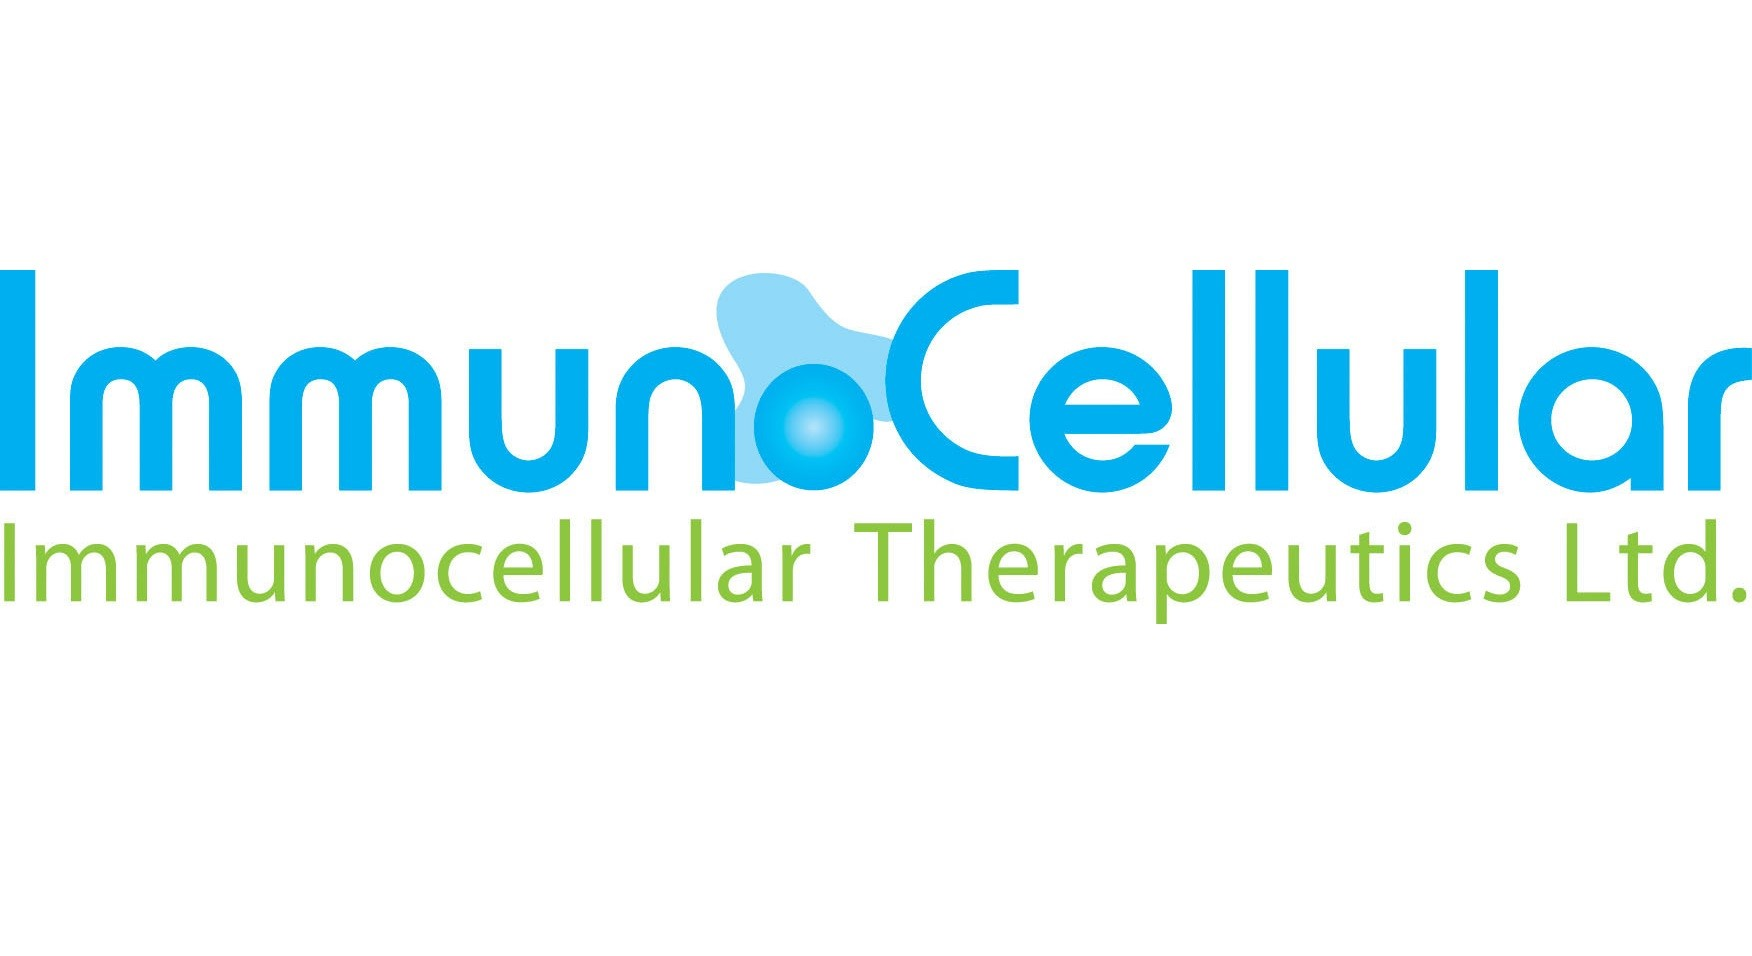 ImmunoCellular Therapeutics Ltd logo